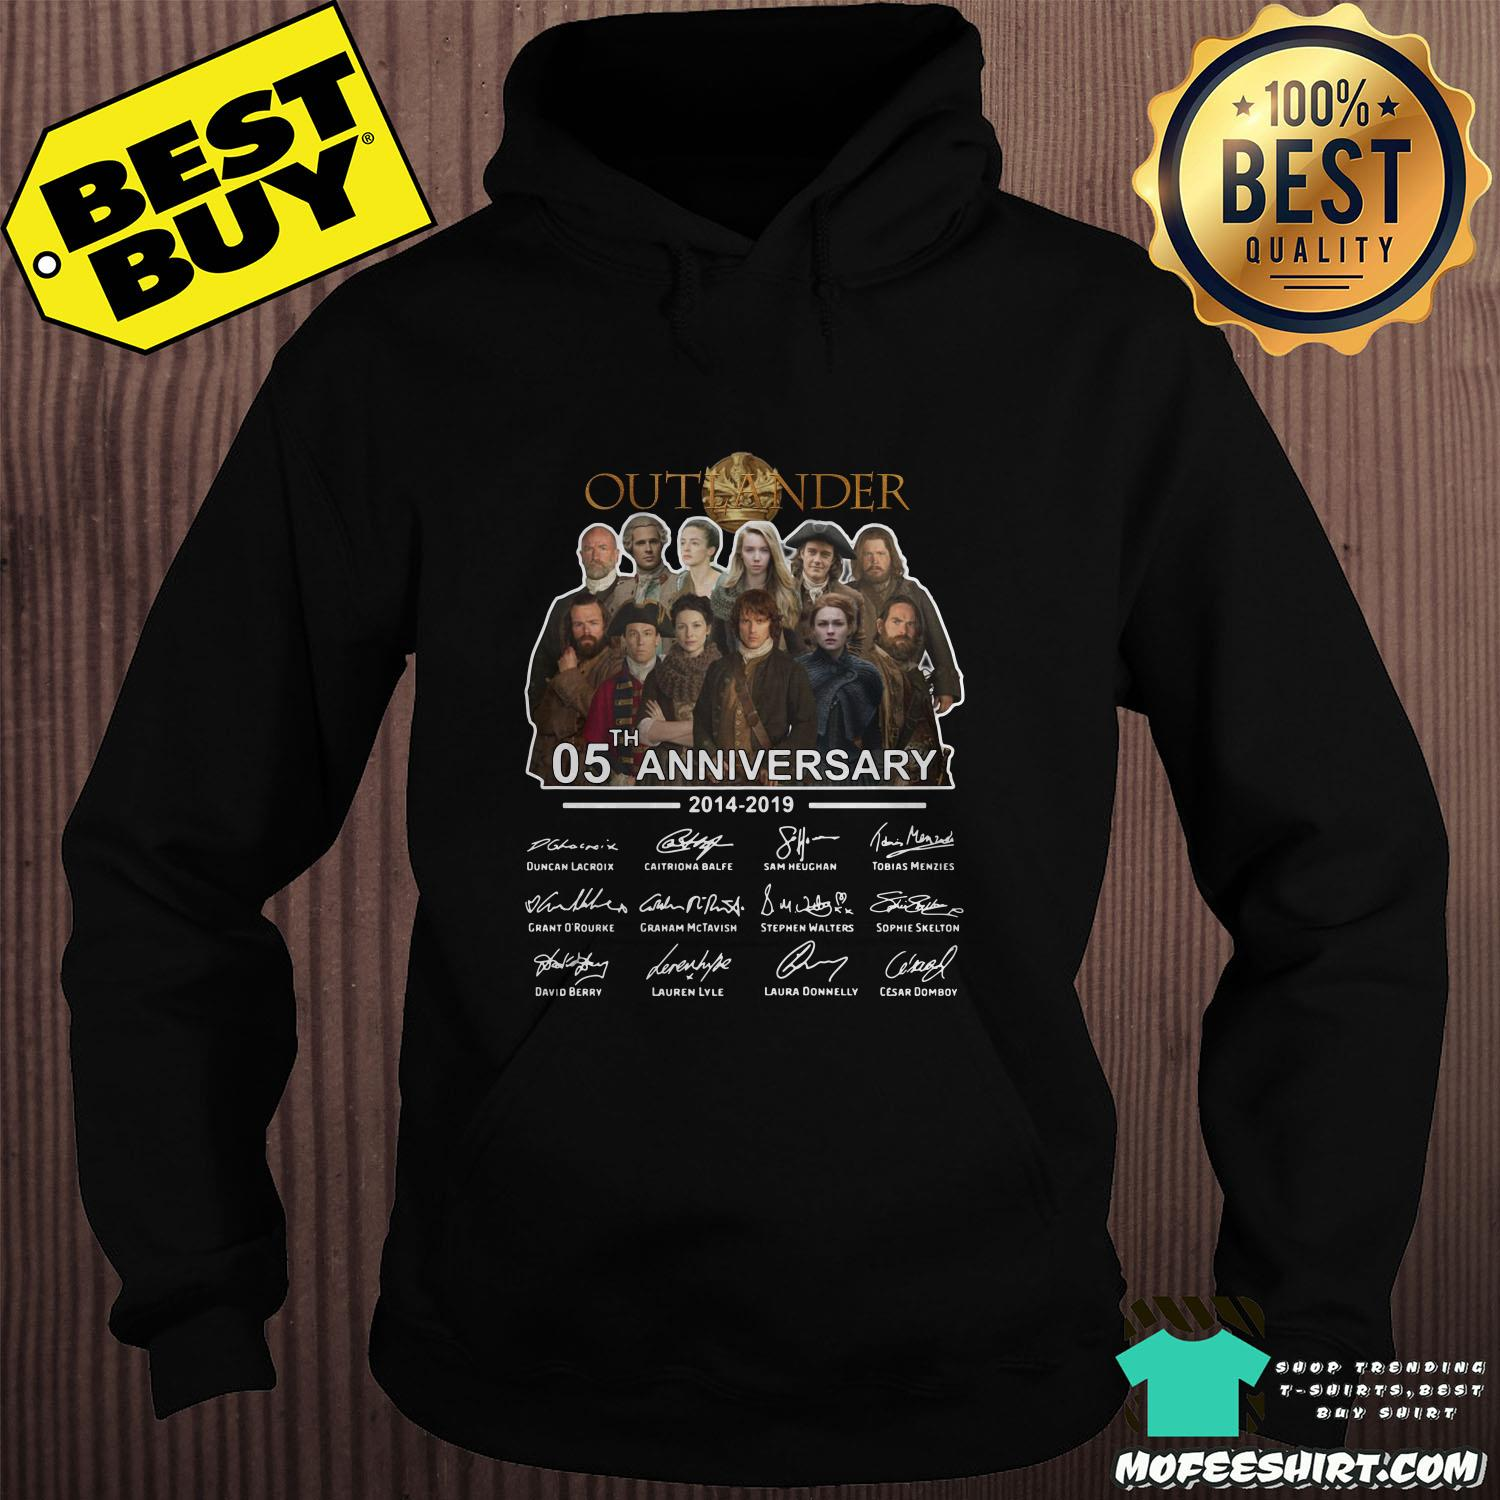 05th anniversary outlander 2014 2019 signatures hoodie - 05th Anniversary Outlander 2014-2019 signatures shirt